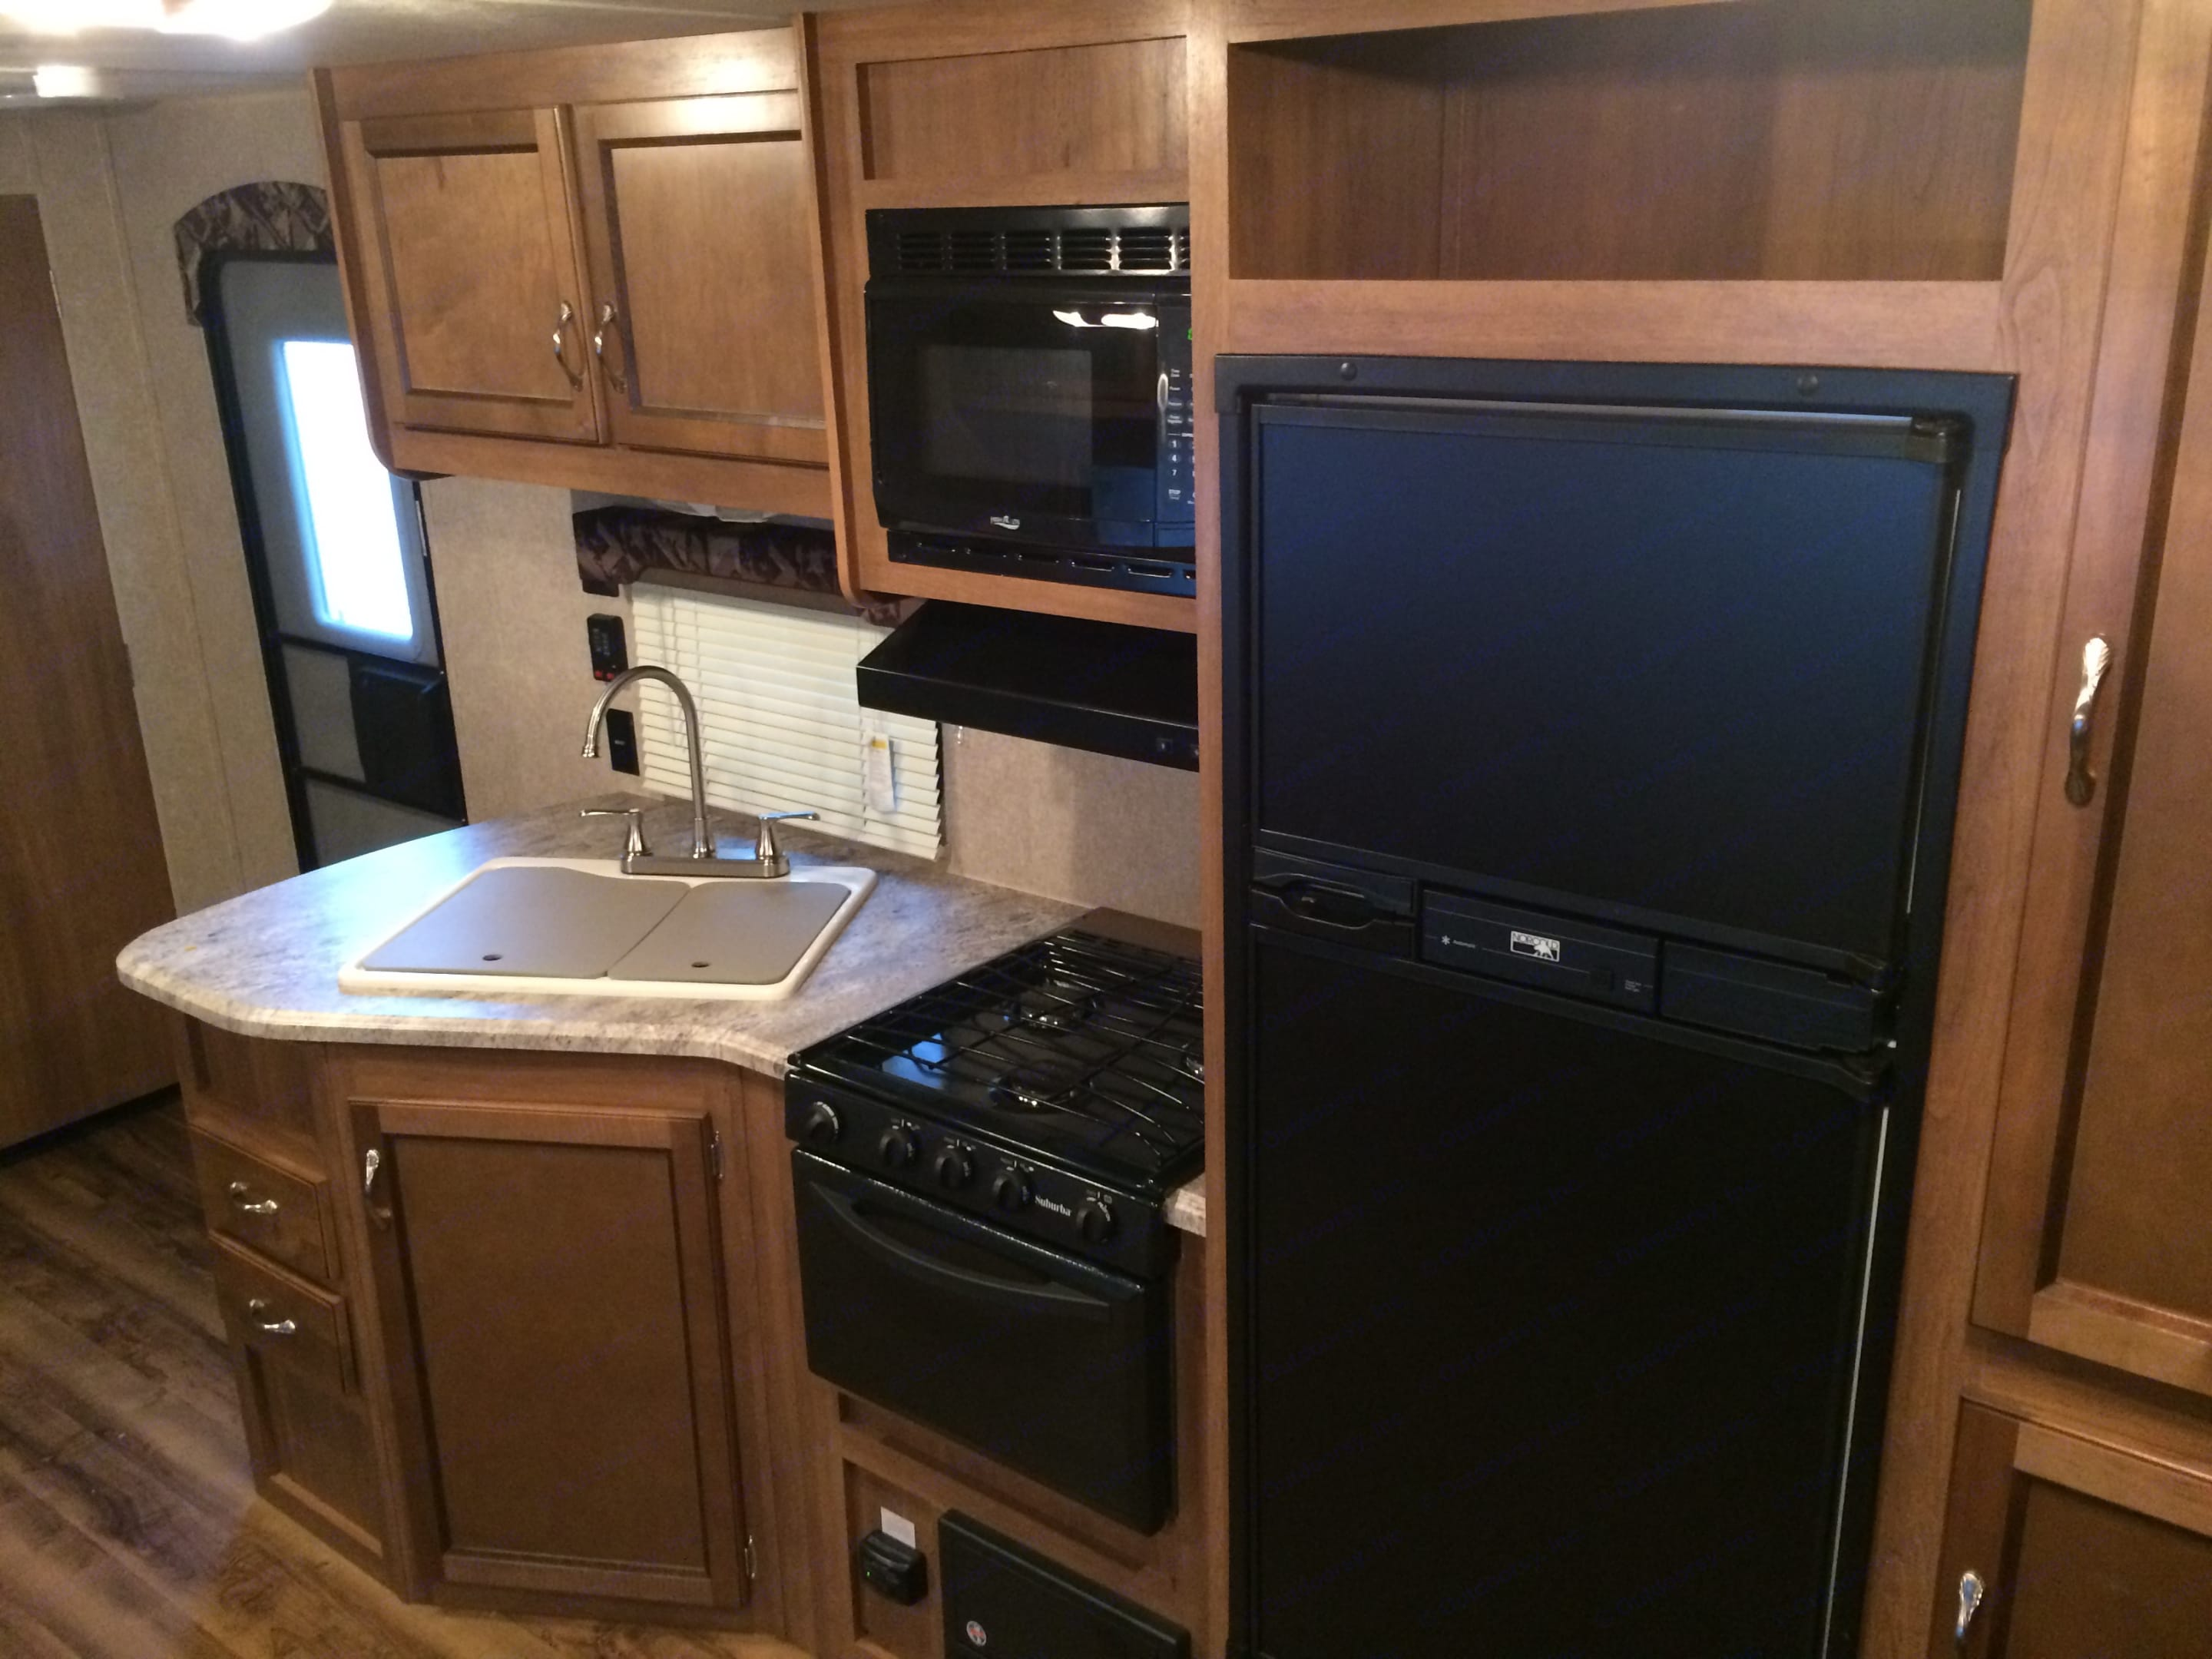 Kitchen with double sink, fridge/freezer, microwave, stove, and oven. Coachmen Catalina SBX 2016